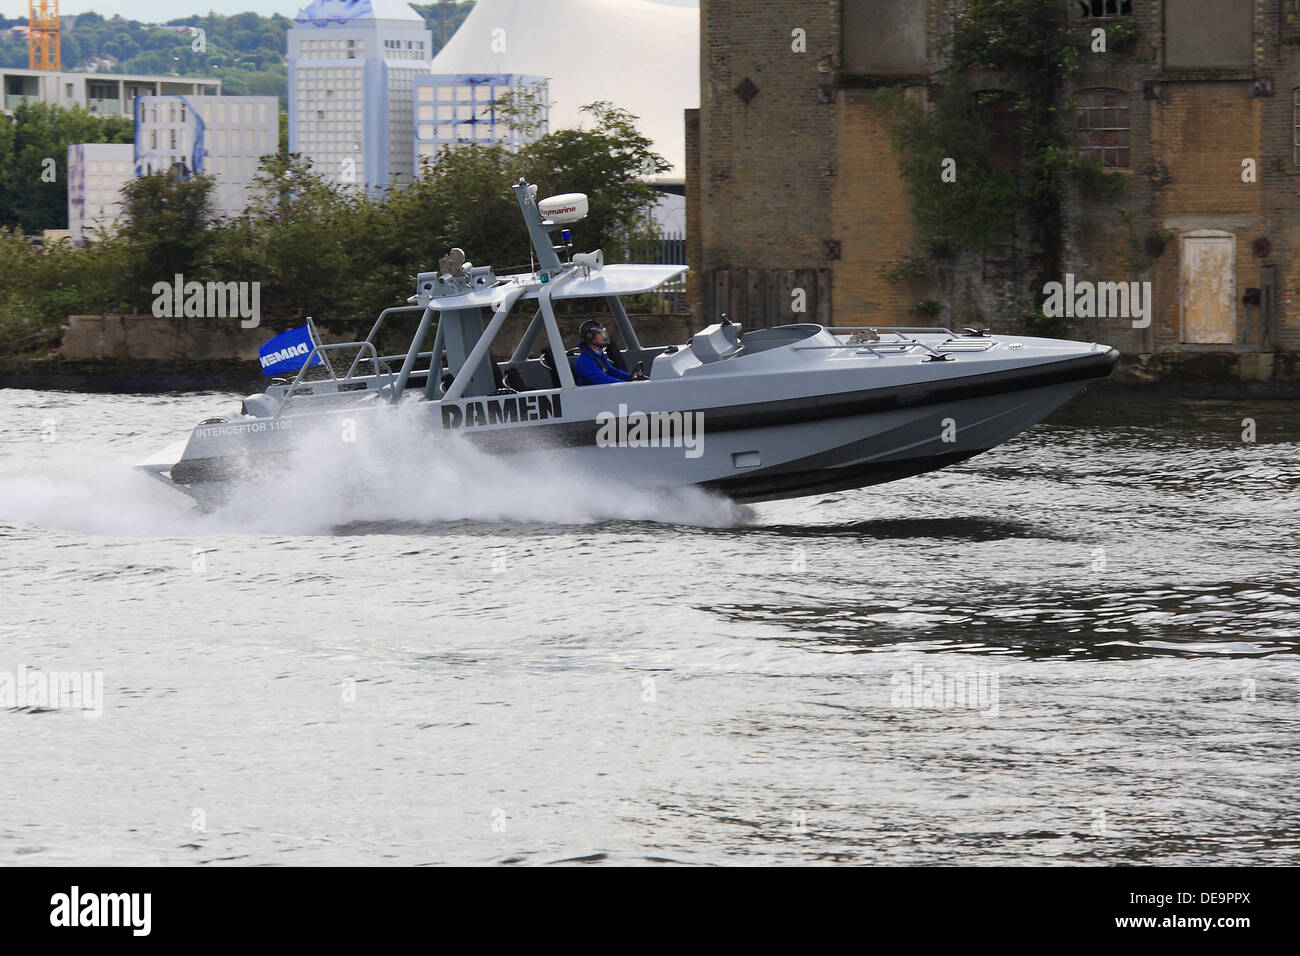 Damen Interceptor 1102 Developed for police, coastguard and navy displays at DSEi 2013 in London's Docklands Stock Photo